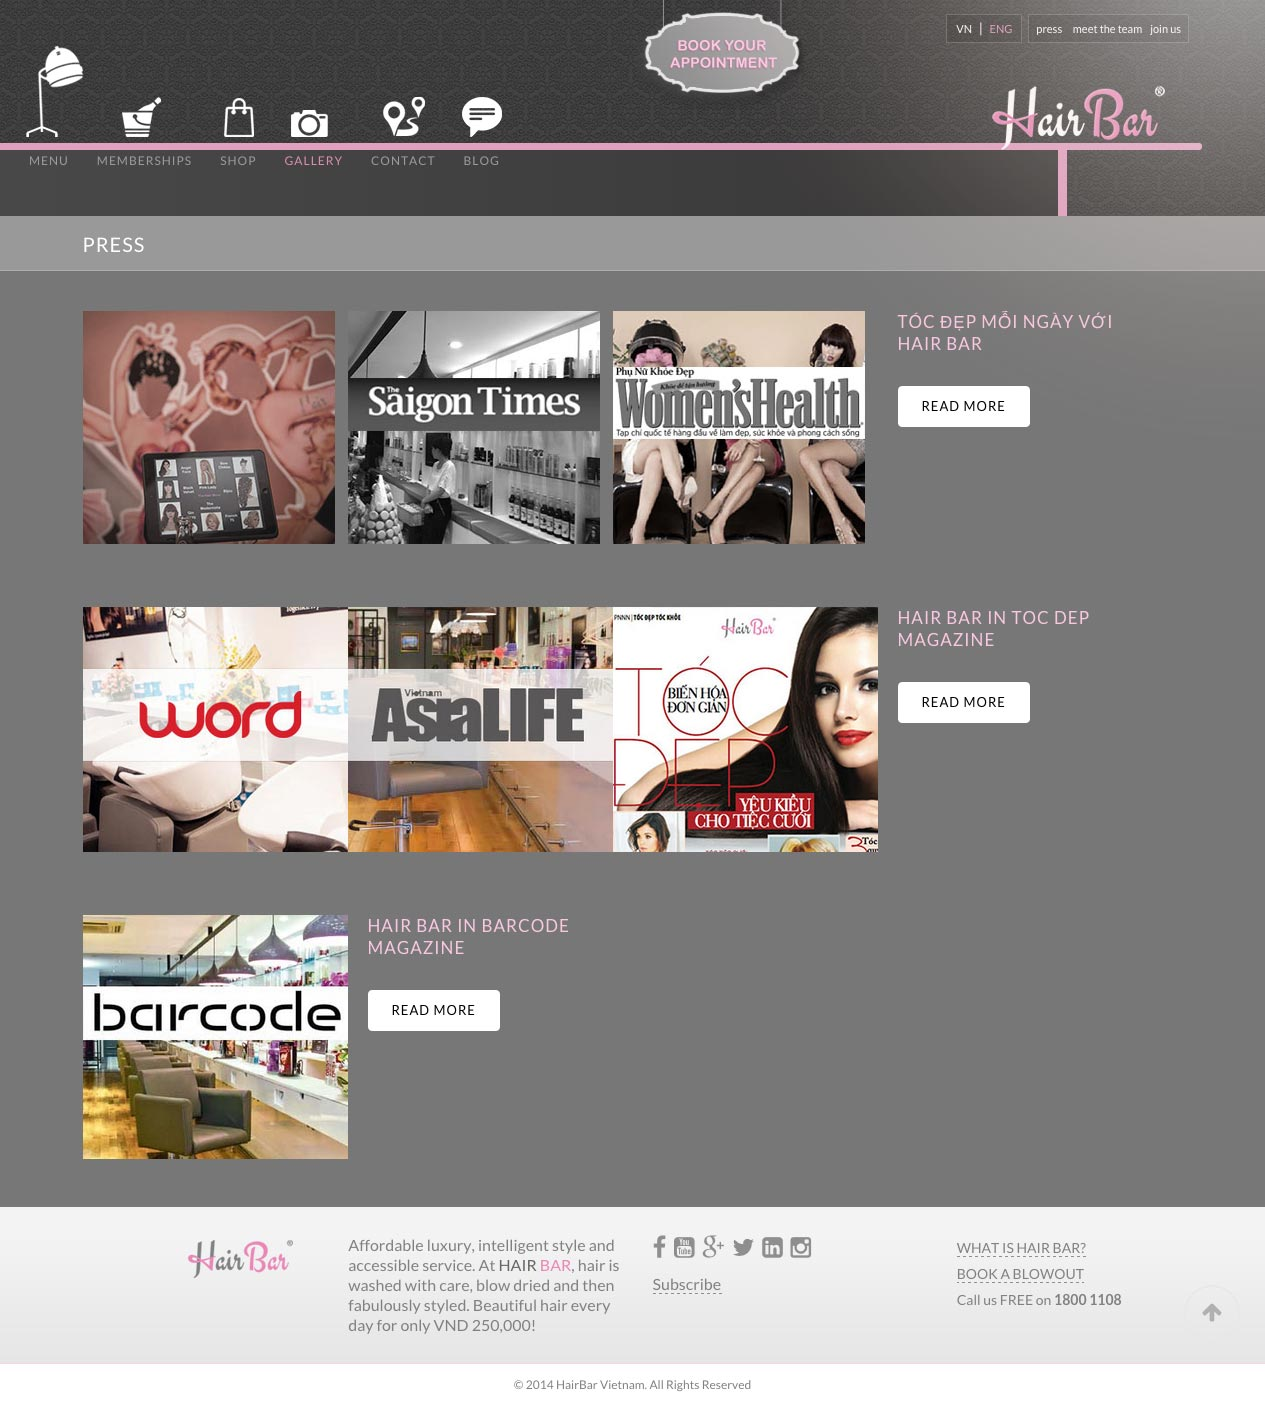 Hair Bar web design desktop